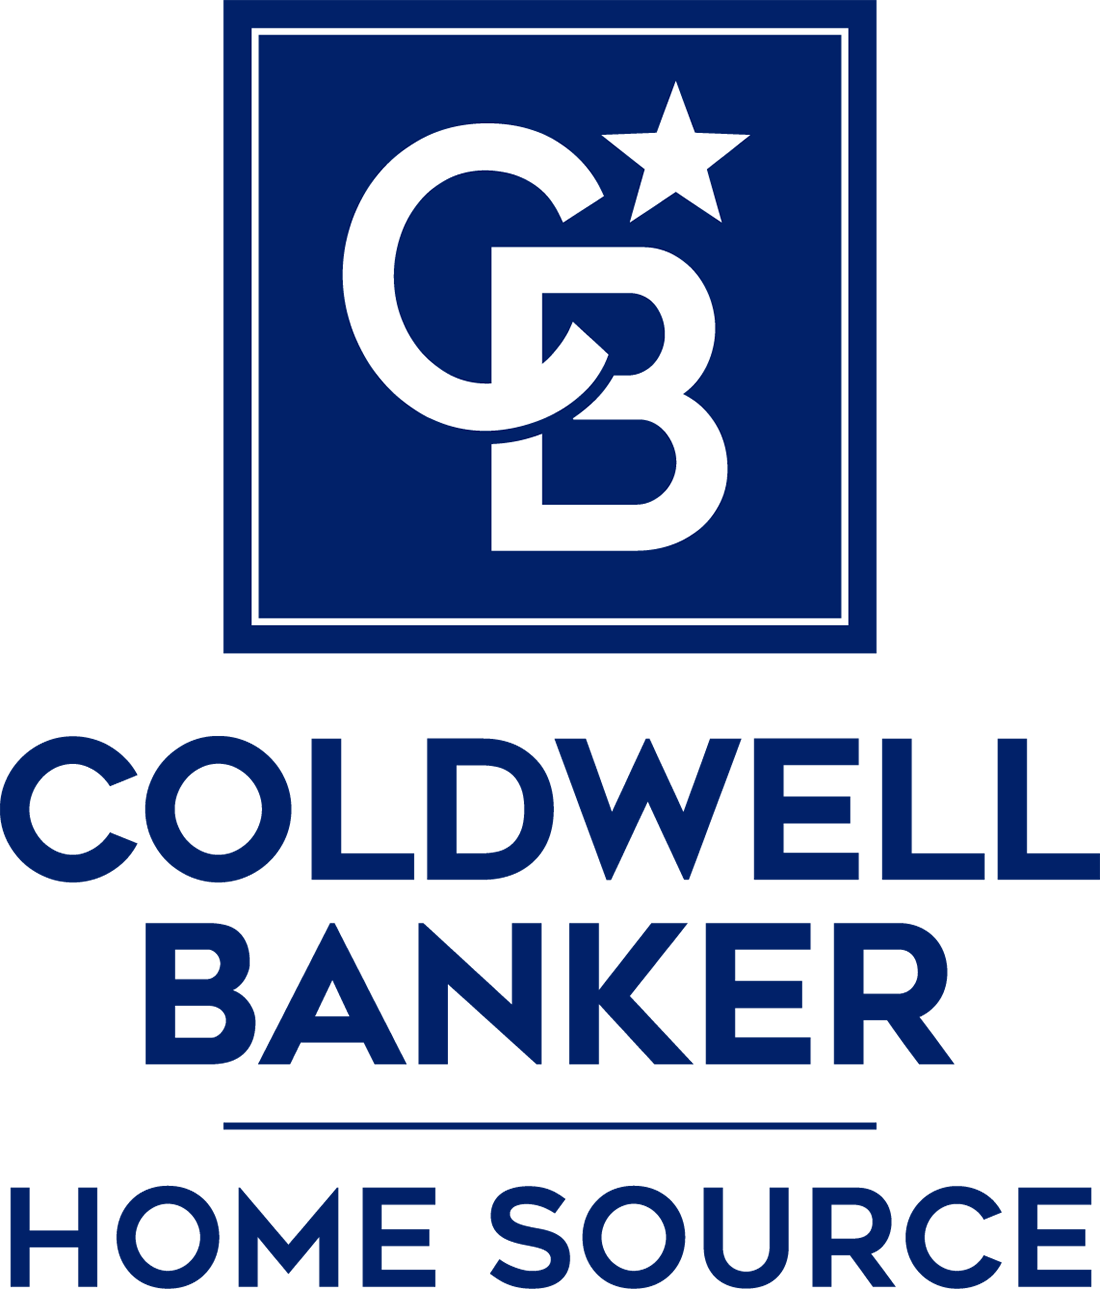 Albert Gallegos-Cordero - Coldwell Banker Home Source Logo